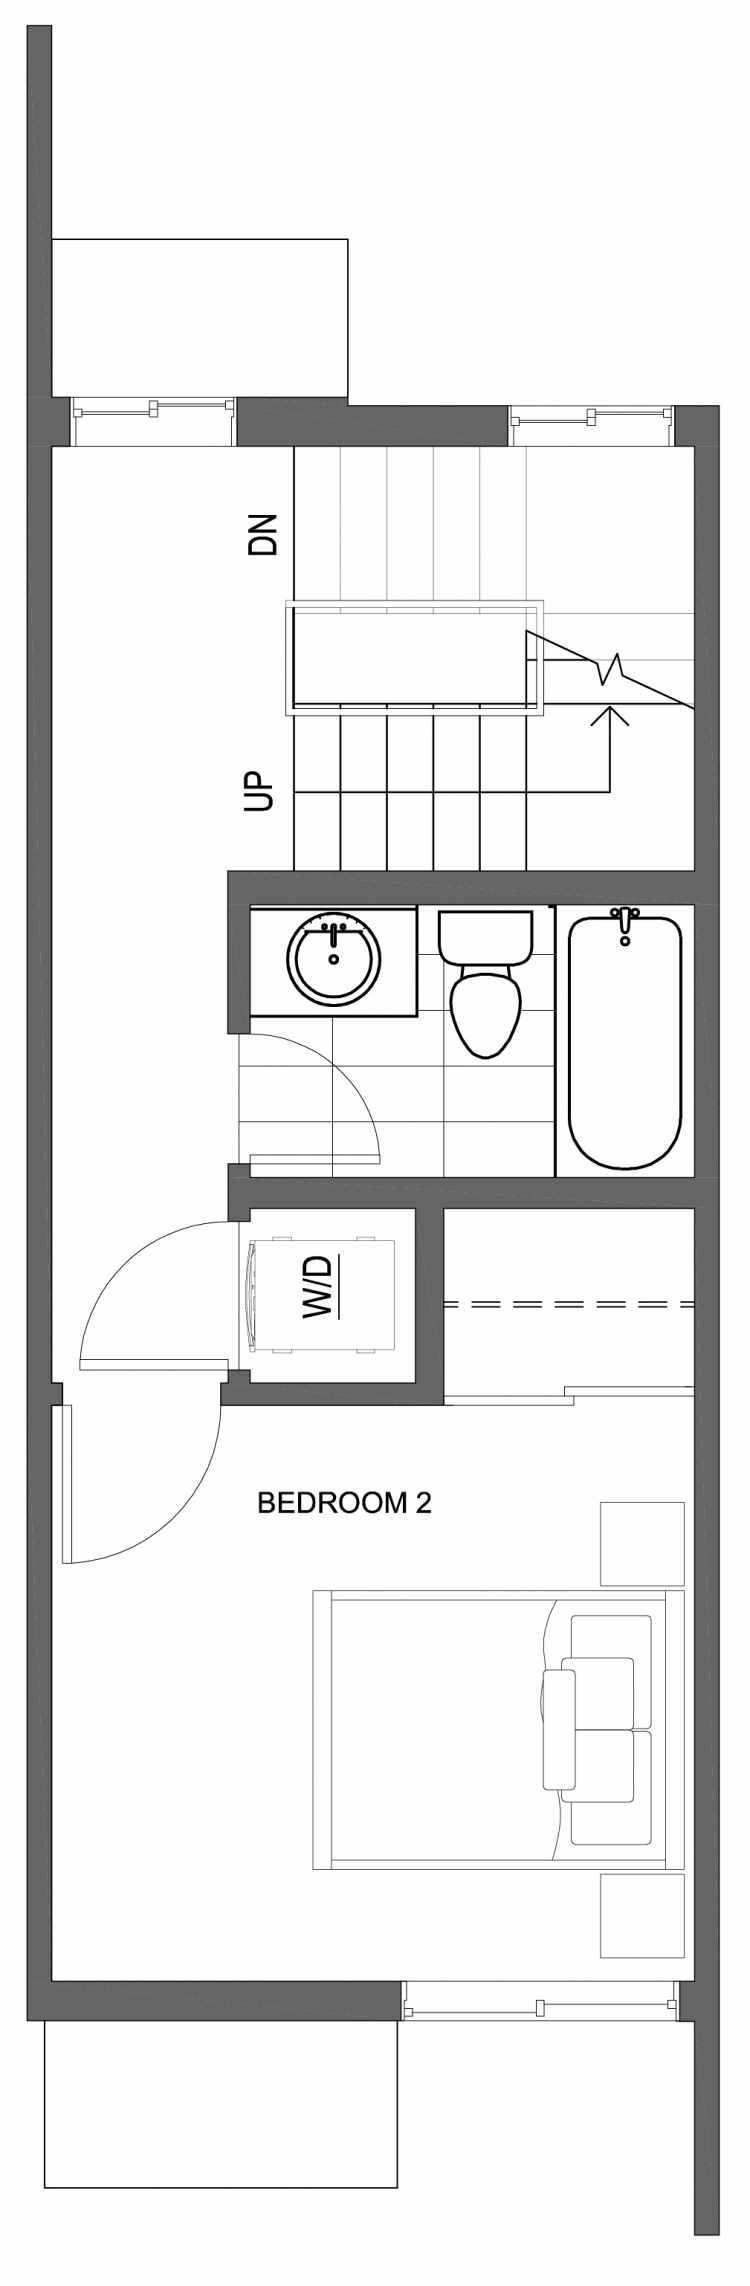 Second Floor Plan of 10423 Alderbrook Pl NW, One of the Zinnia Townhomes in the Greenwood Neighborhood of Seattle